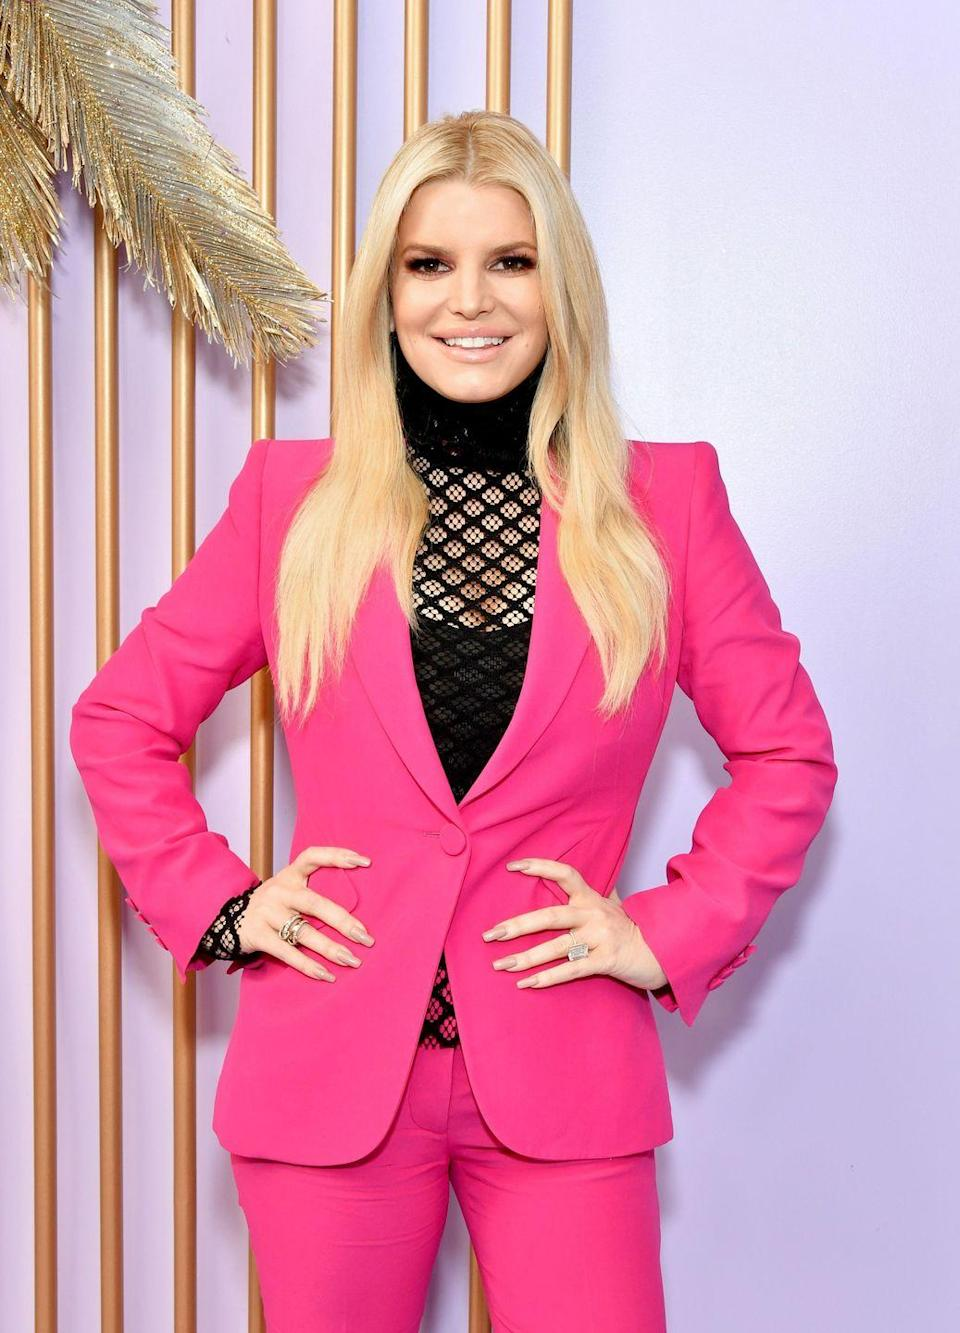 "<p>In 2005, Simpson launched a fashion company called The Jessica Simpson Collection, which went on to become a <a href=""https://www.forbes.com/sites/clareoconnor/2014/05/16/jessica-simpsons-1-billion-retail-empire-i-understand-women/#6d026b9d17ad"" rel=""nofollow noopener"" target=""_blank"" data-ylk=""slk:billion dollar corporation"" class=""link rapid-noclick-resp"">billion dollar corporation</a>. Most recently, she added author to her list of accomplishments with the release of her memoir, <em><a href=""https://www.amazon.com/Untitled-Memoir-Lou-Htims/dp/0062899961/"" rel=""nofollow noopener"" target=""_blank"" data-ylk=""slk:Open Book"" class=""link rapid-noclick-resp"">Open Book</a>.</em></p>"